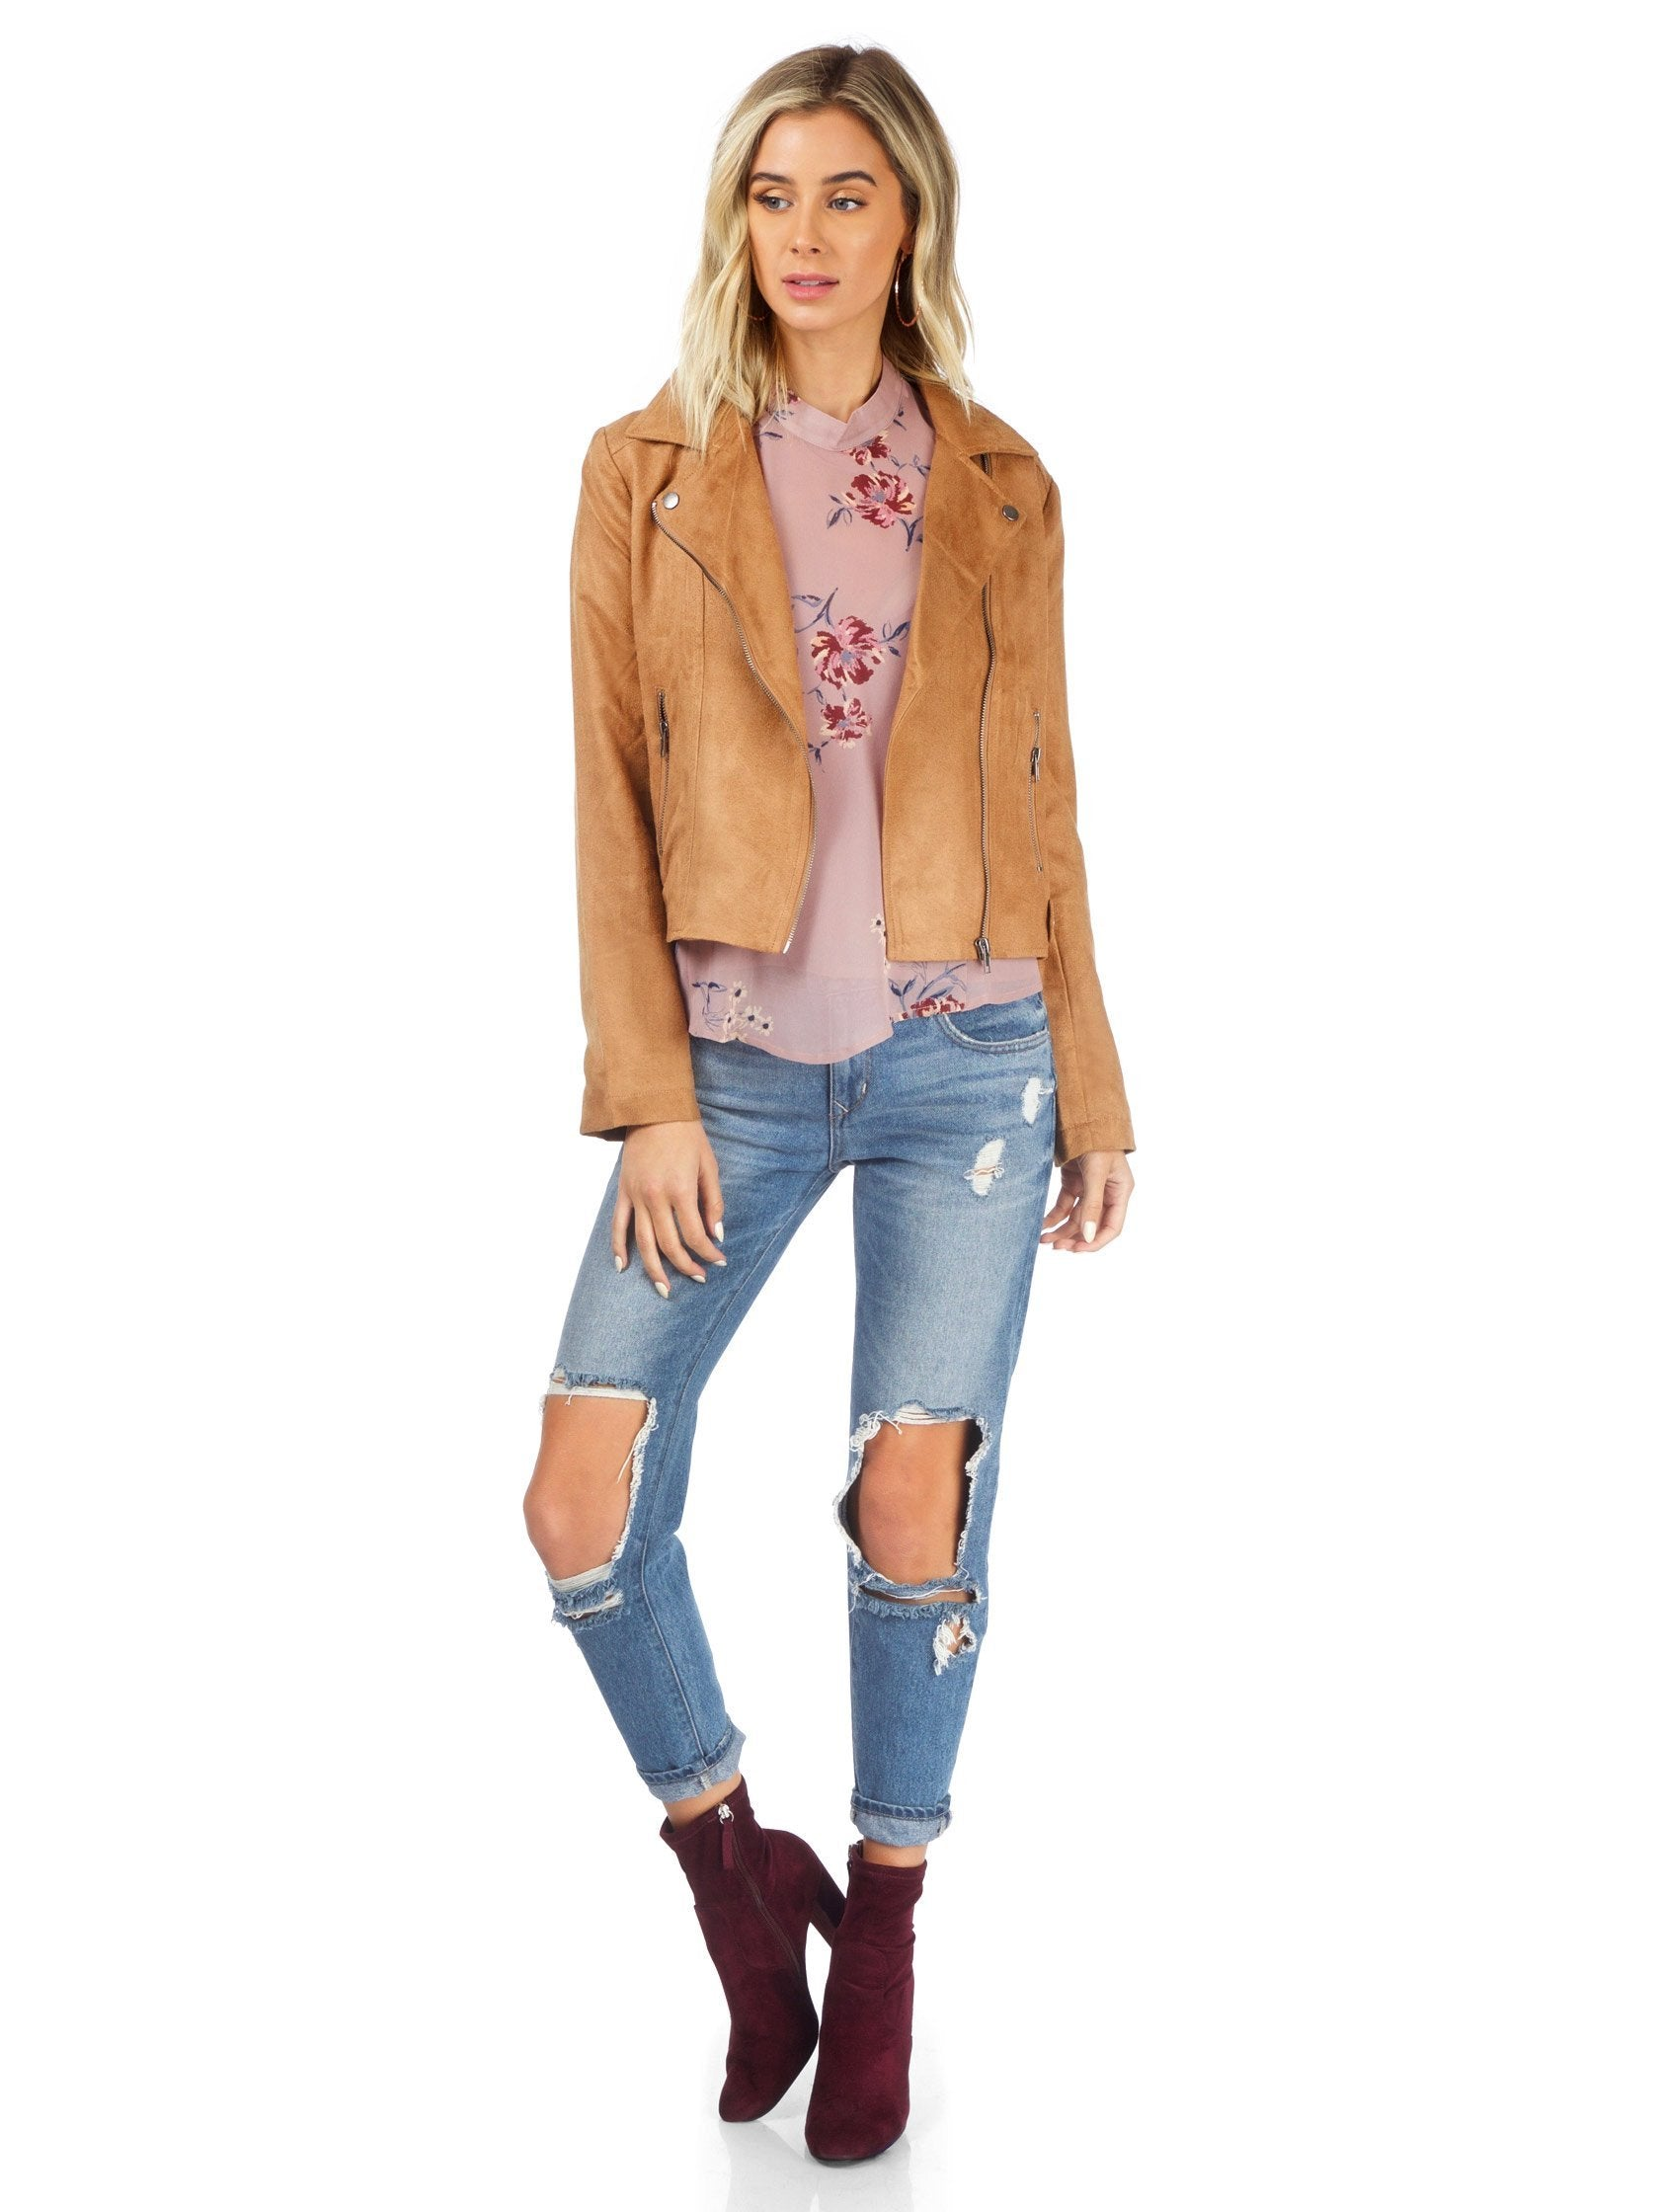 Girl wearing a jacket rental from BB Dakota called Jack By Bb Dakota Johanness Woven Faux Suede Jacket